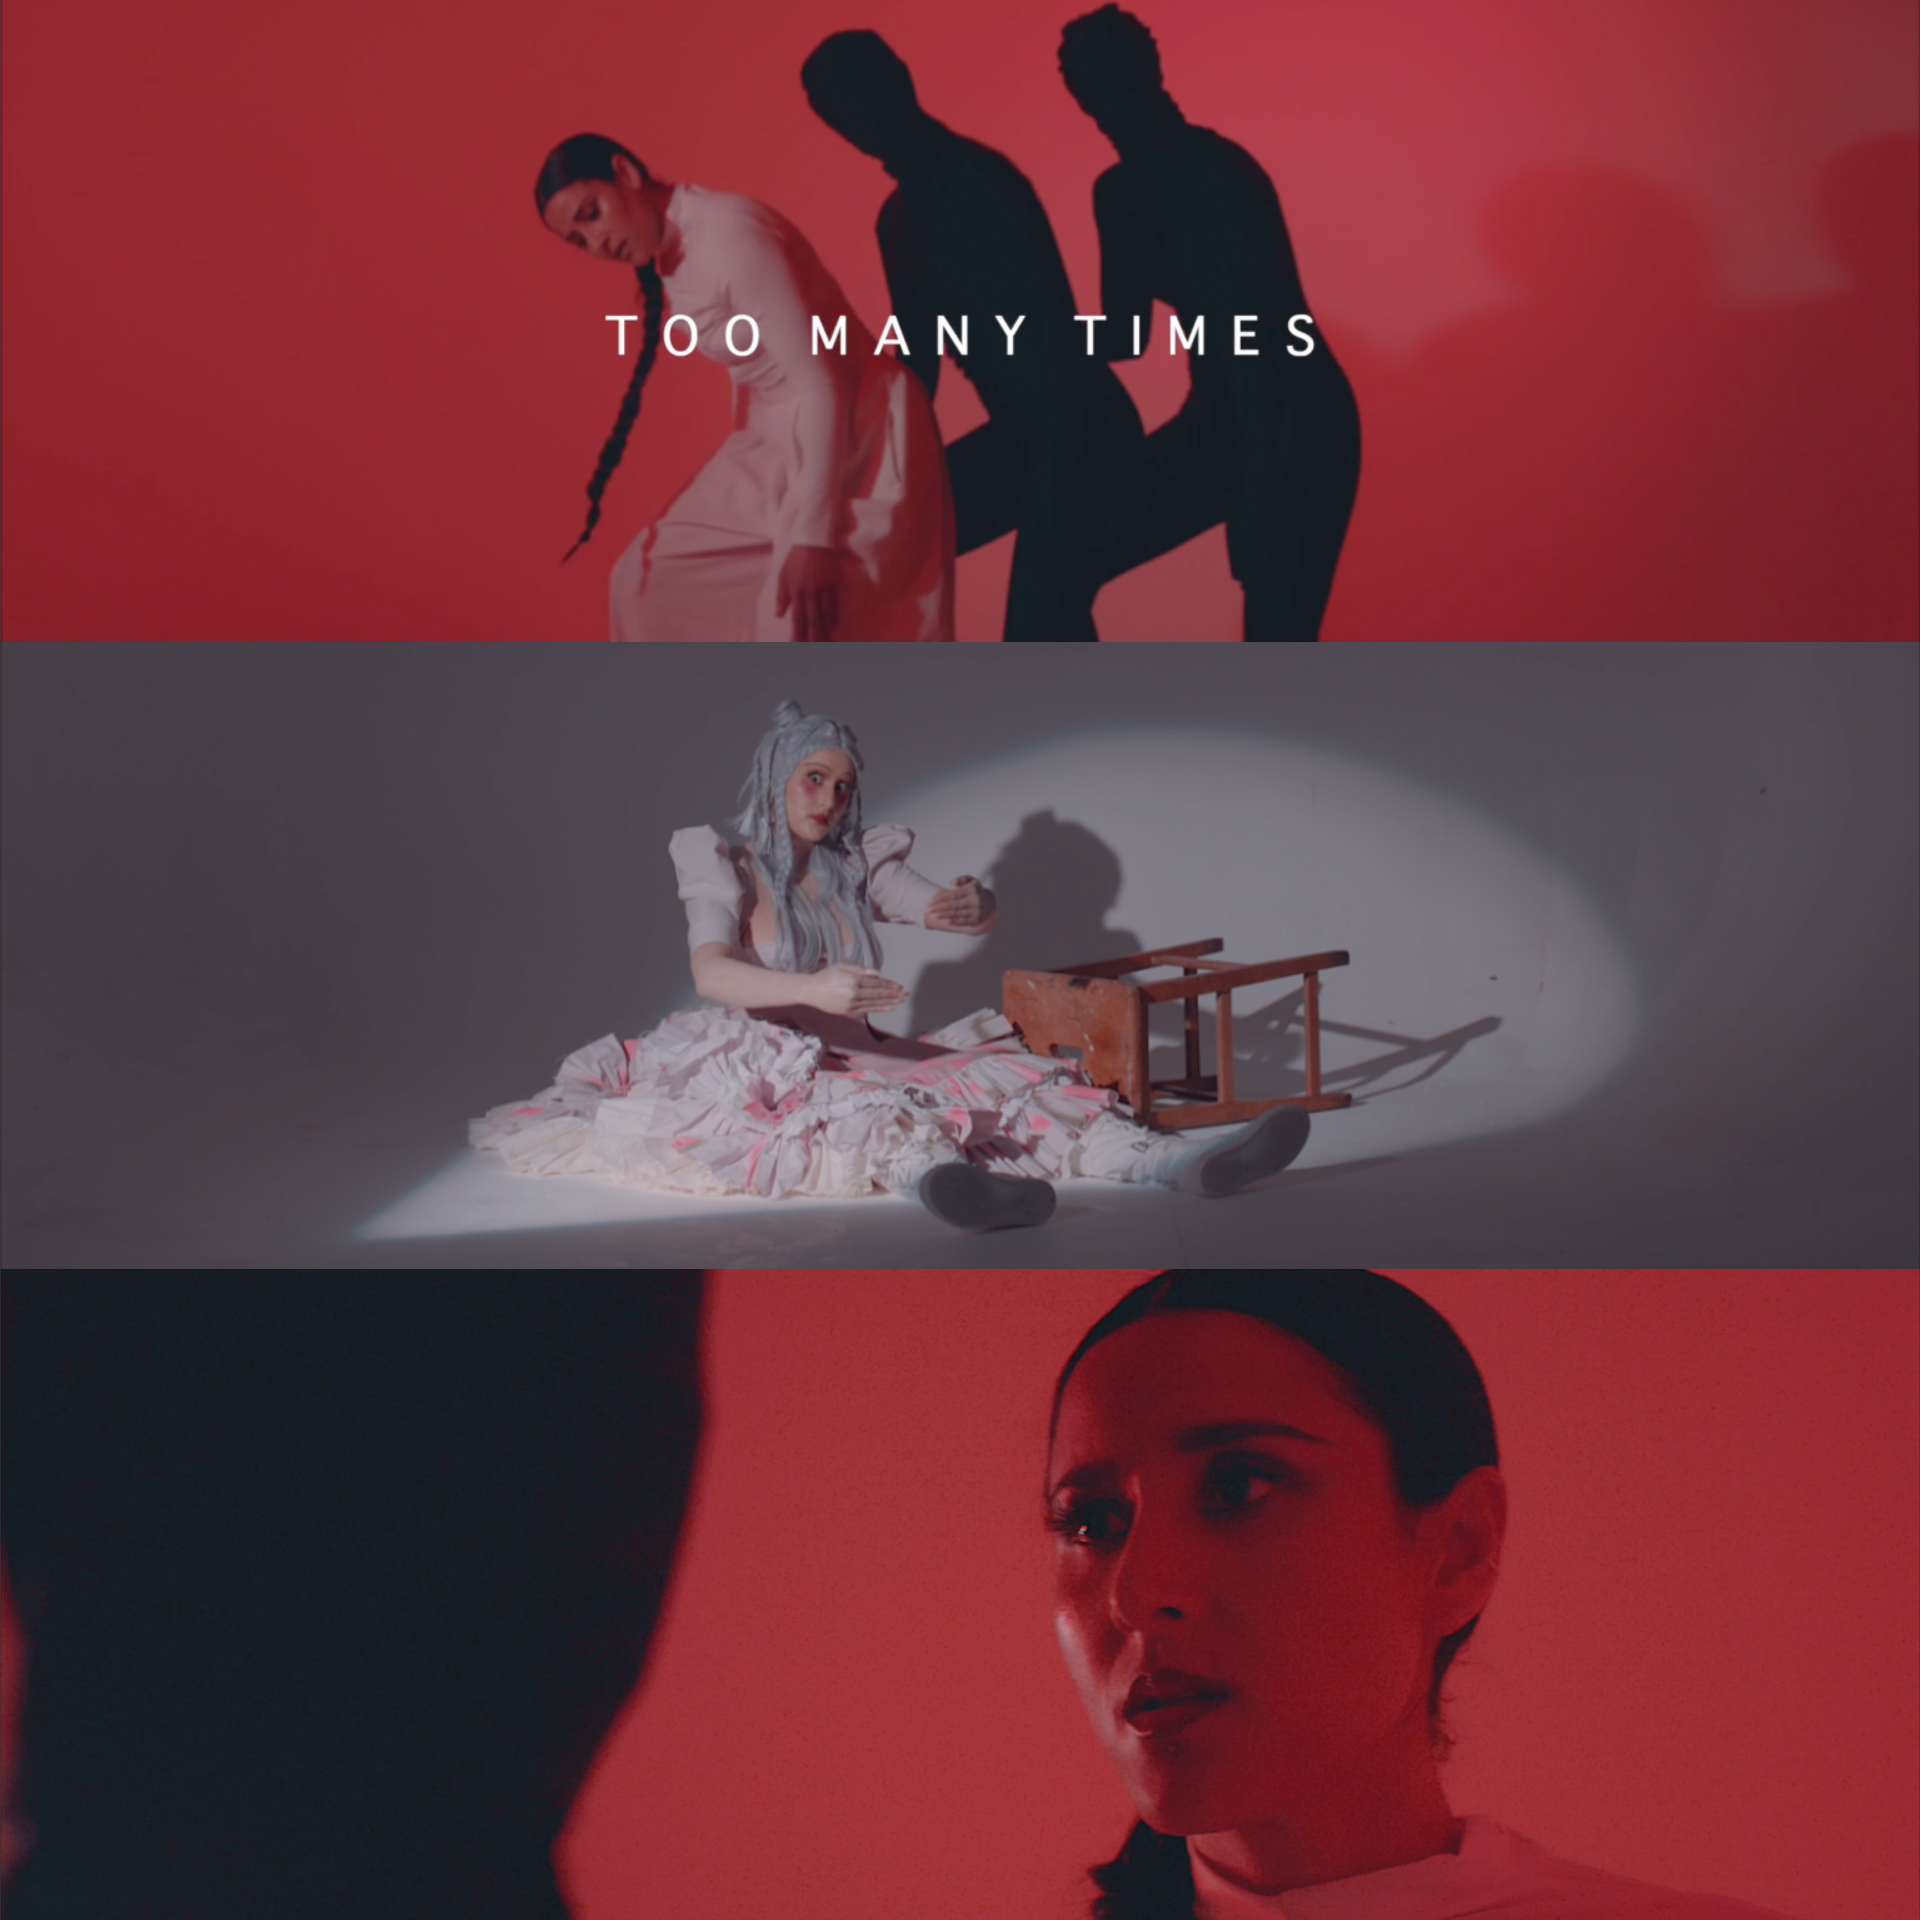 Salt Ashes - Too Many Times - Music Video